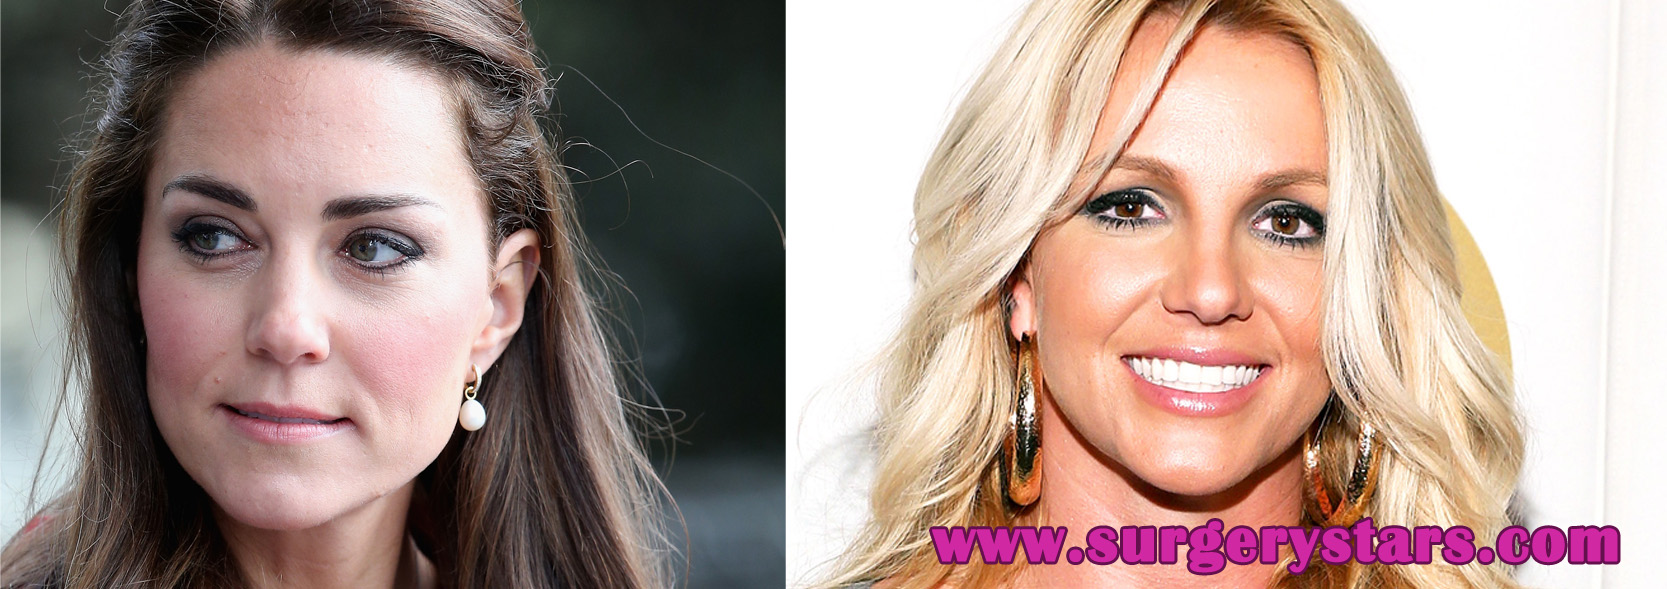 celebrity before and after plastic surgery (10 celebs)